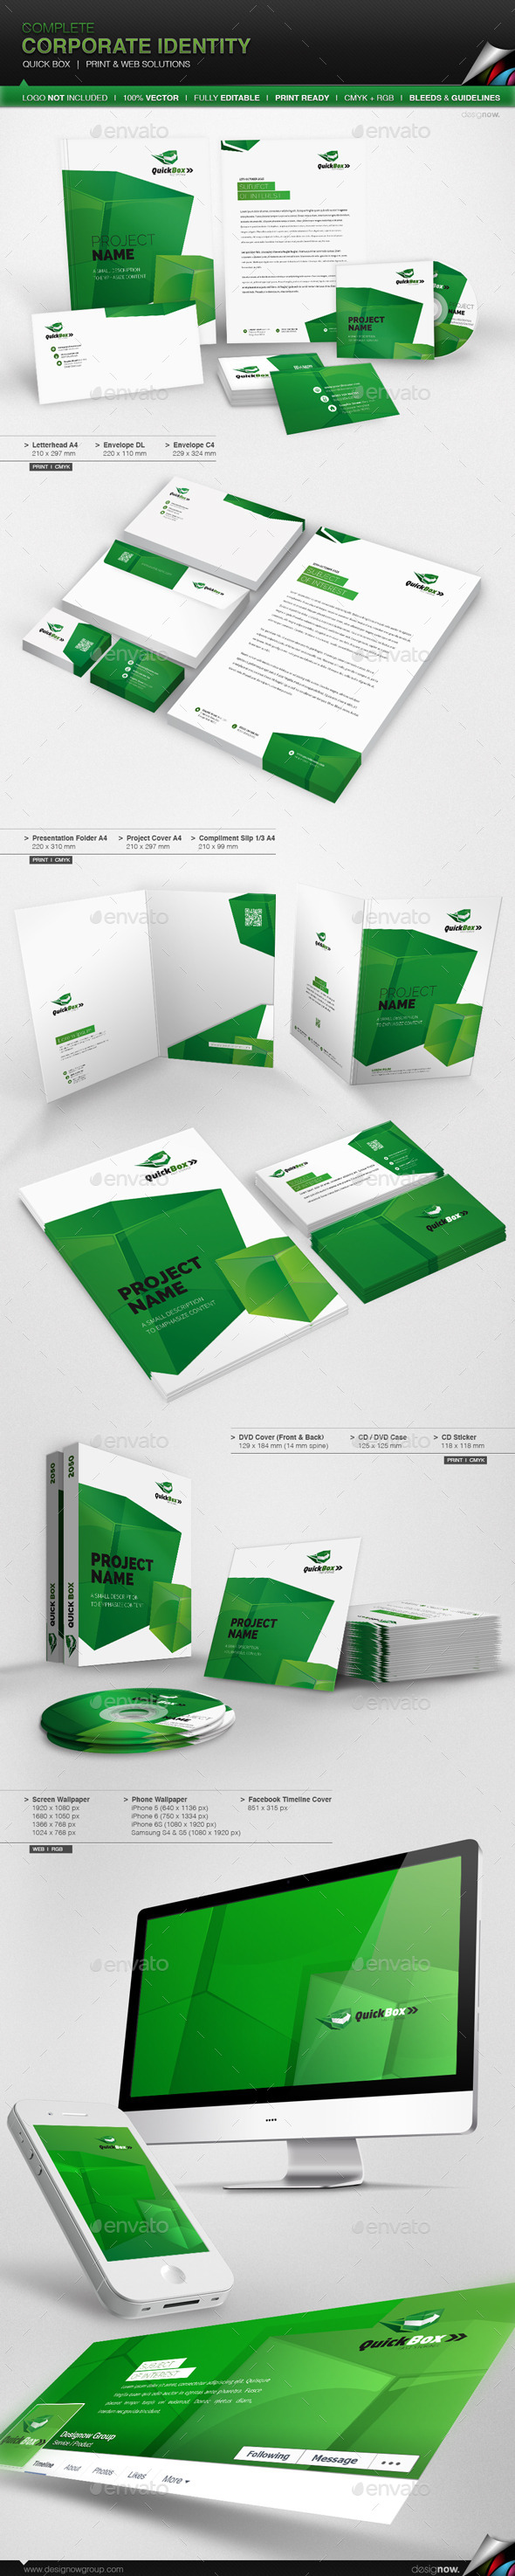 GraphicRiver Corporate Identity Quick Box 9367292